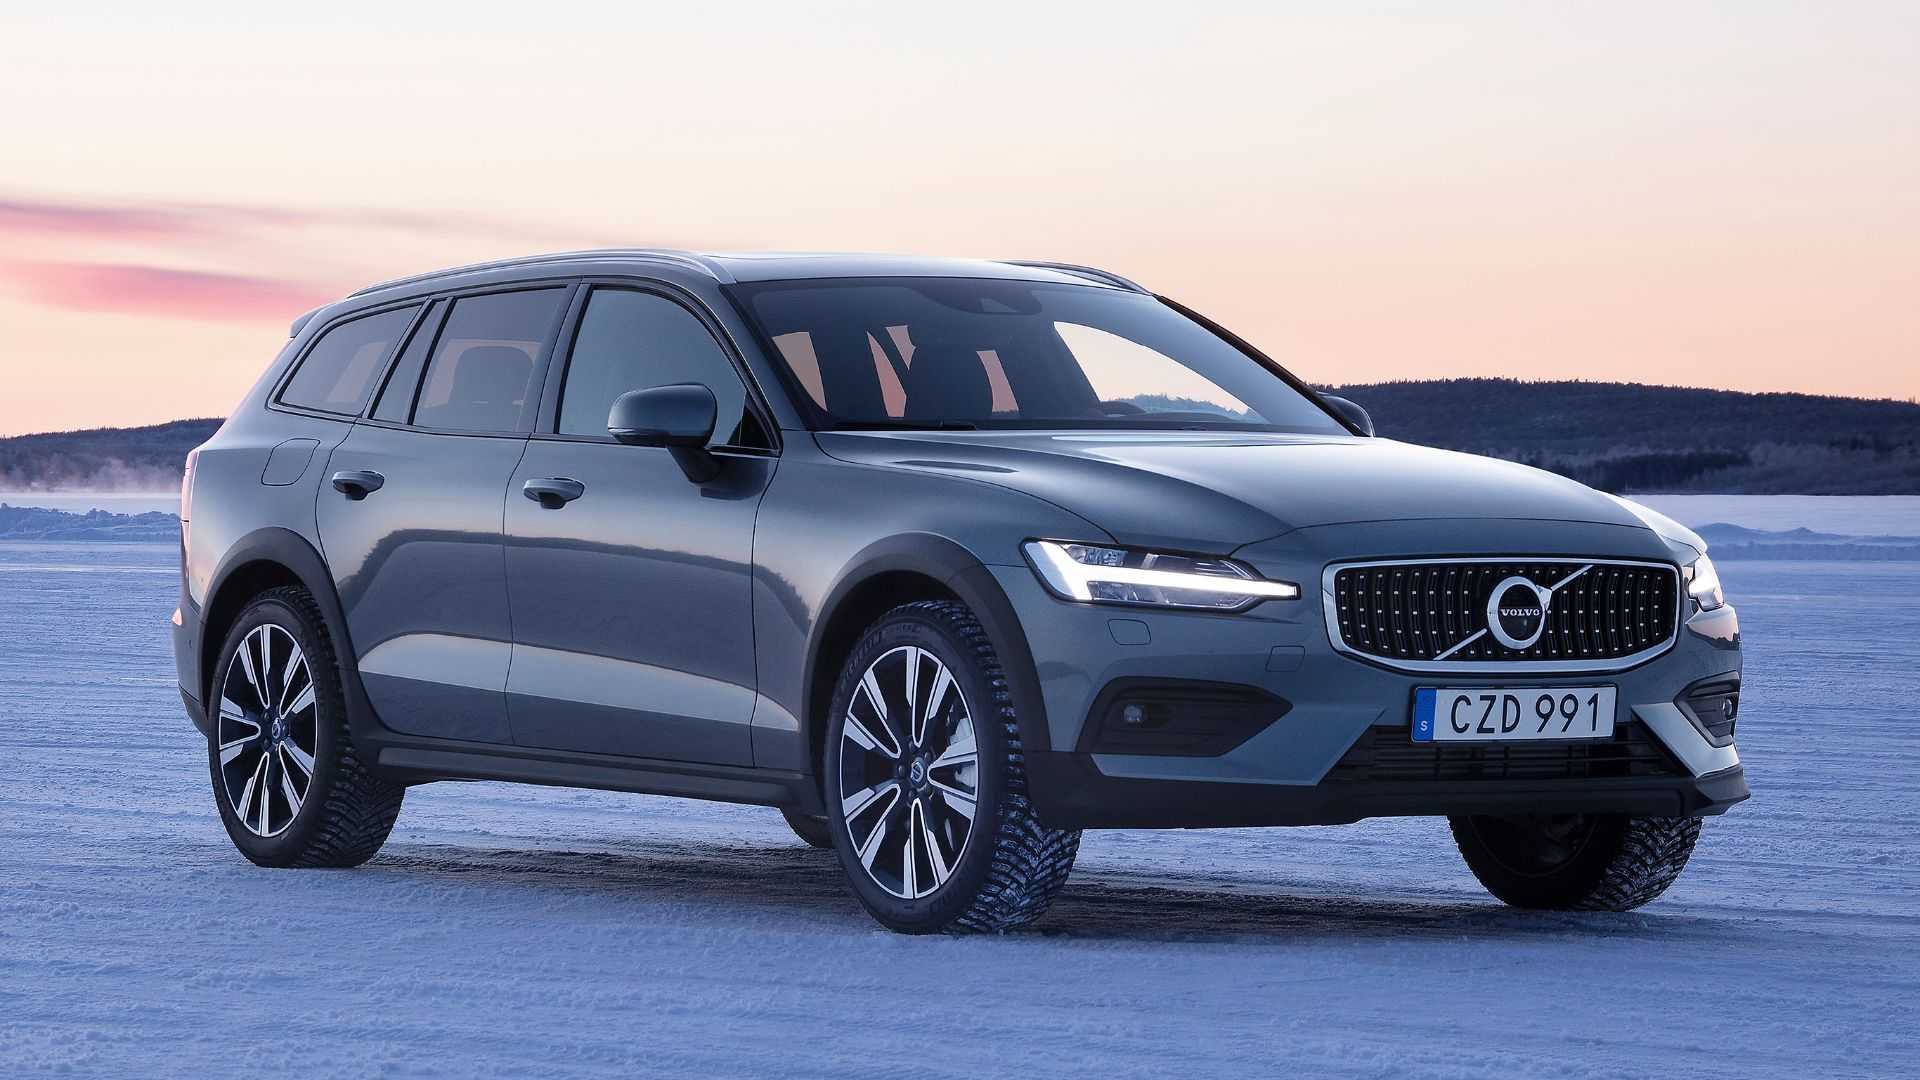 15 Gallery of Volvo V60 Cross Country 2020 Price and Review with Volvo V60 Cross Country 2020